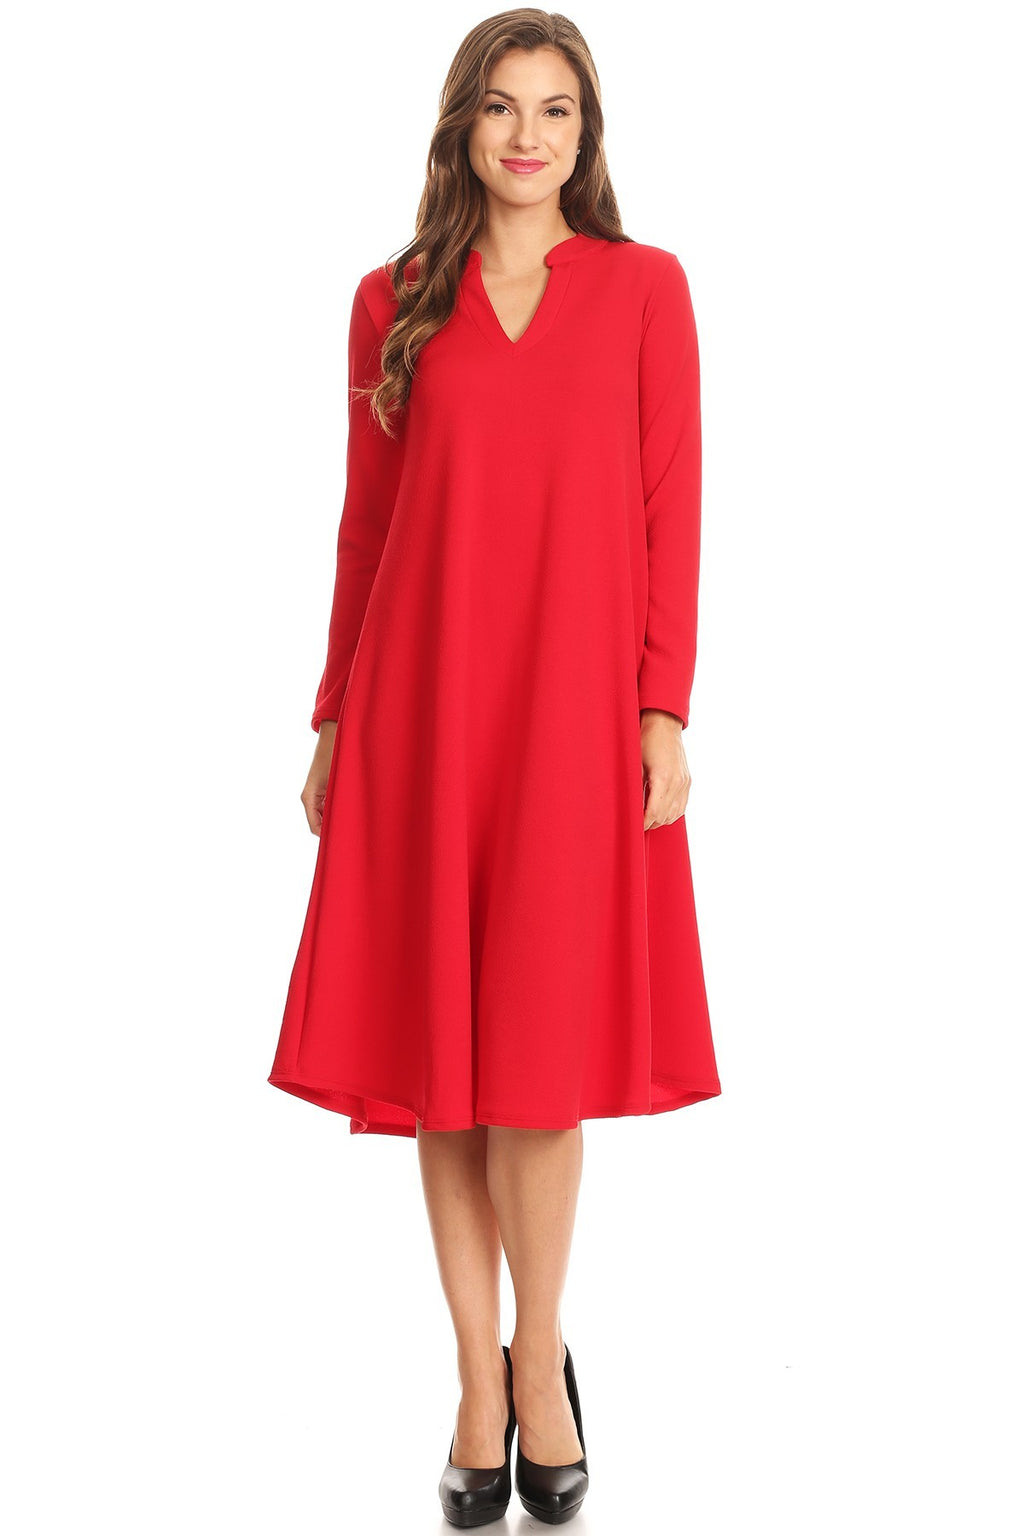 Red V-Neck Swing Dress